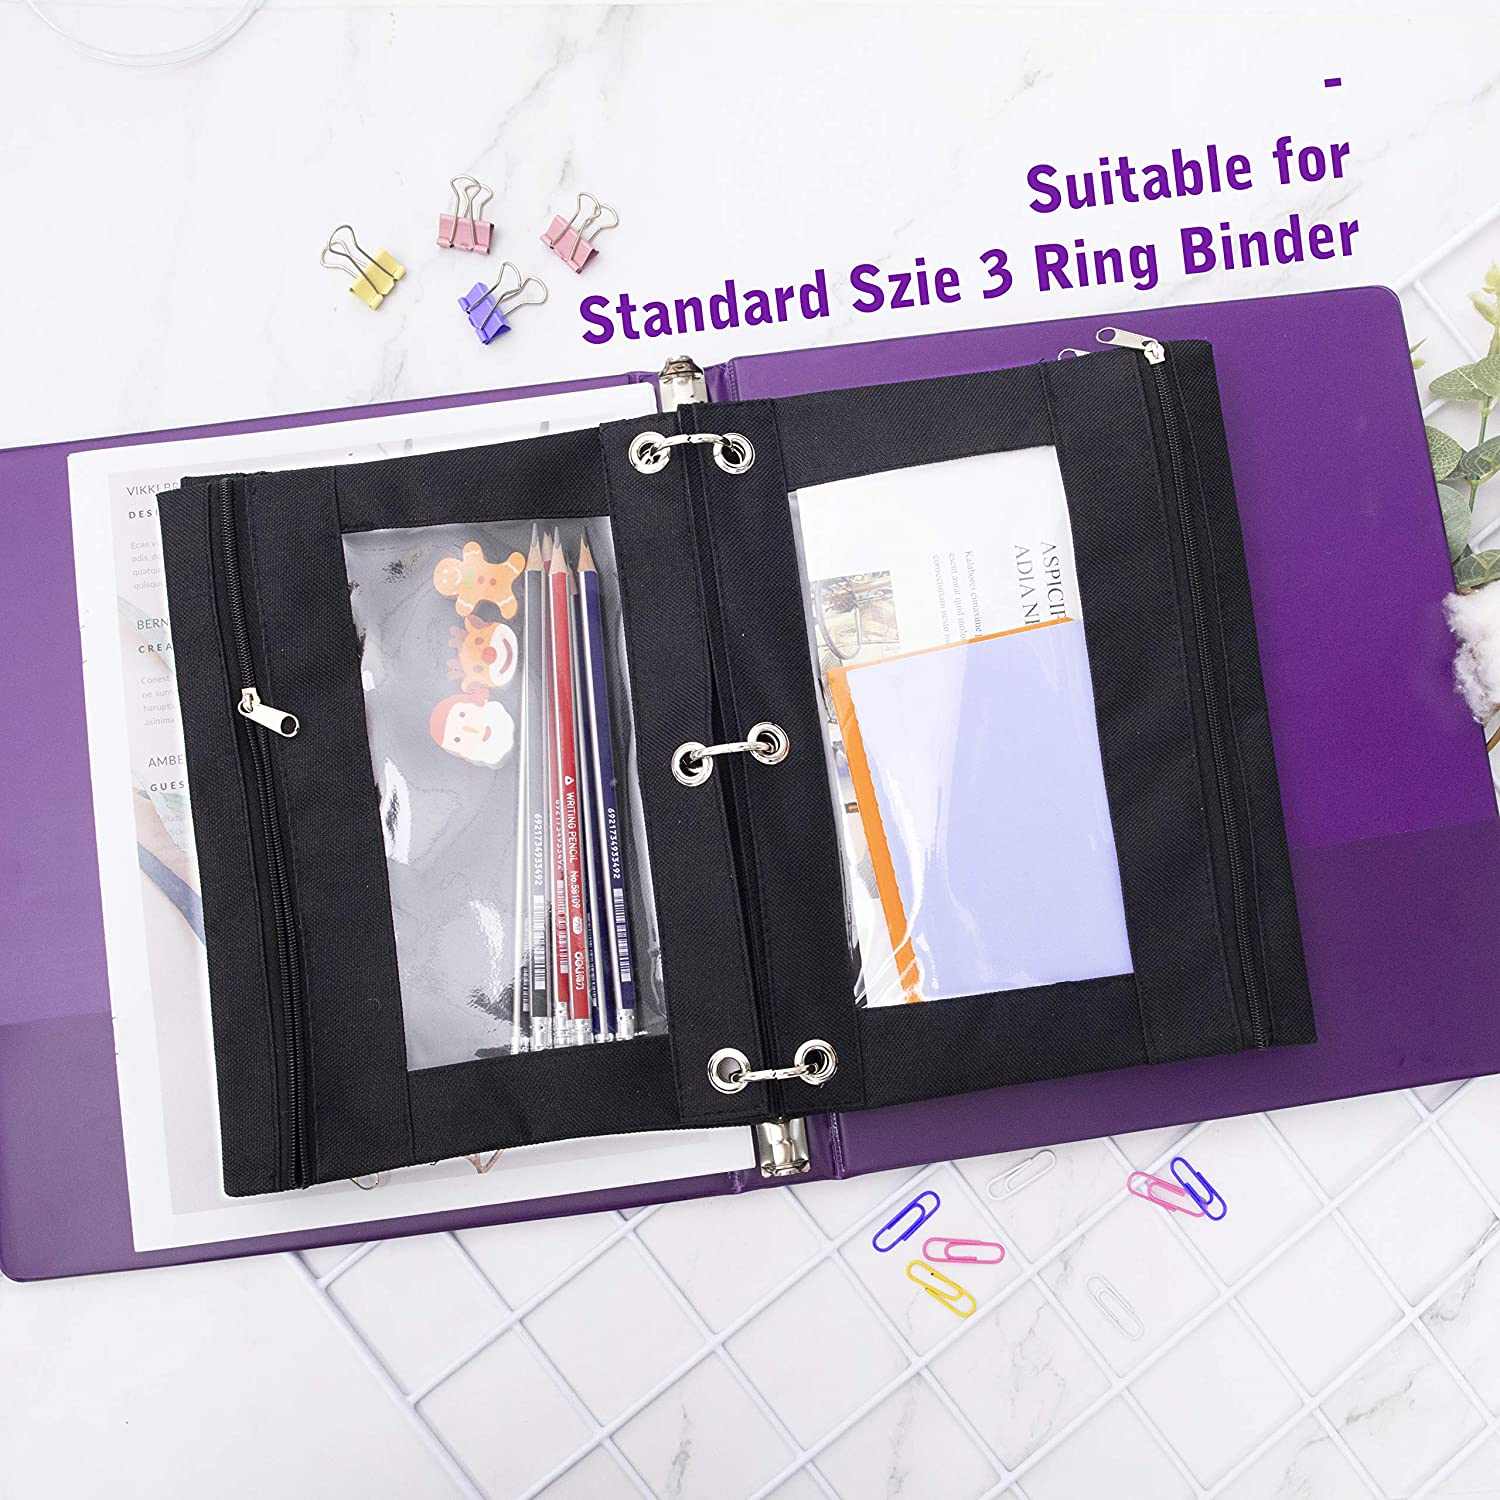 Zipper Pencil Pouch for 3 Ring Binder B5 Size Black LABUK Binder Pencil Pouch 1 Clear View Window Pack of 3 Pencil Case for Binder